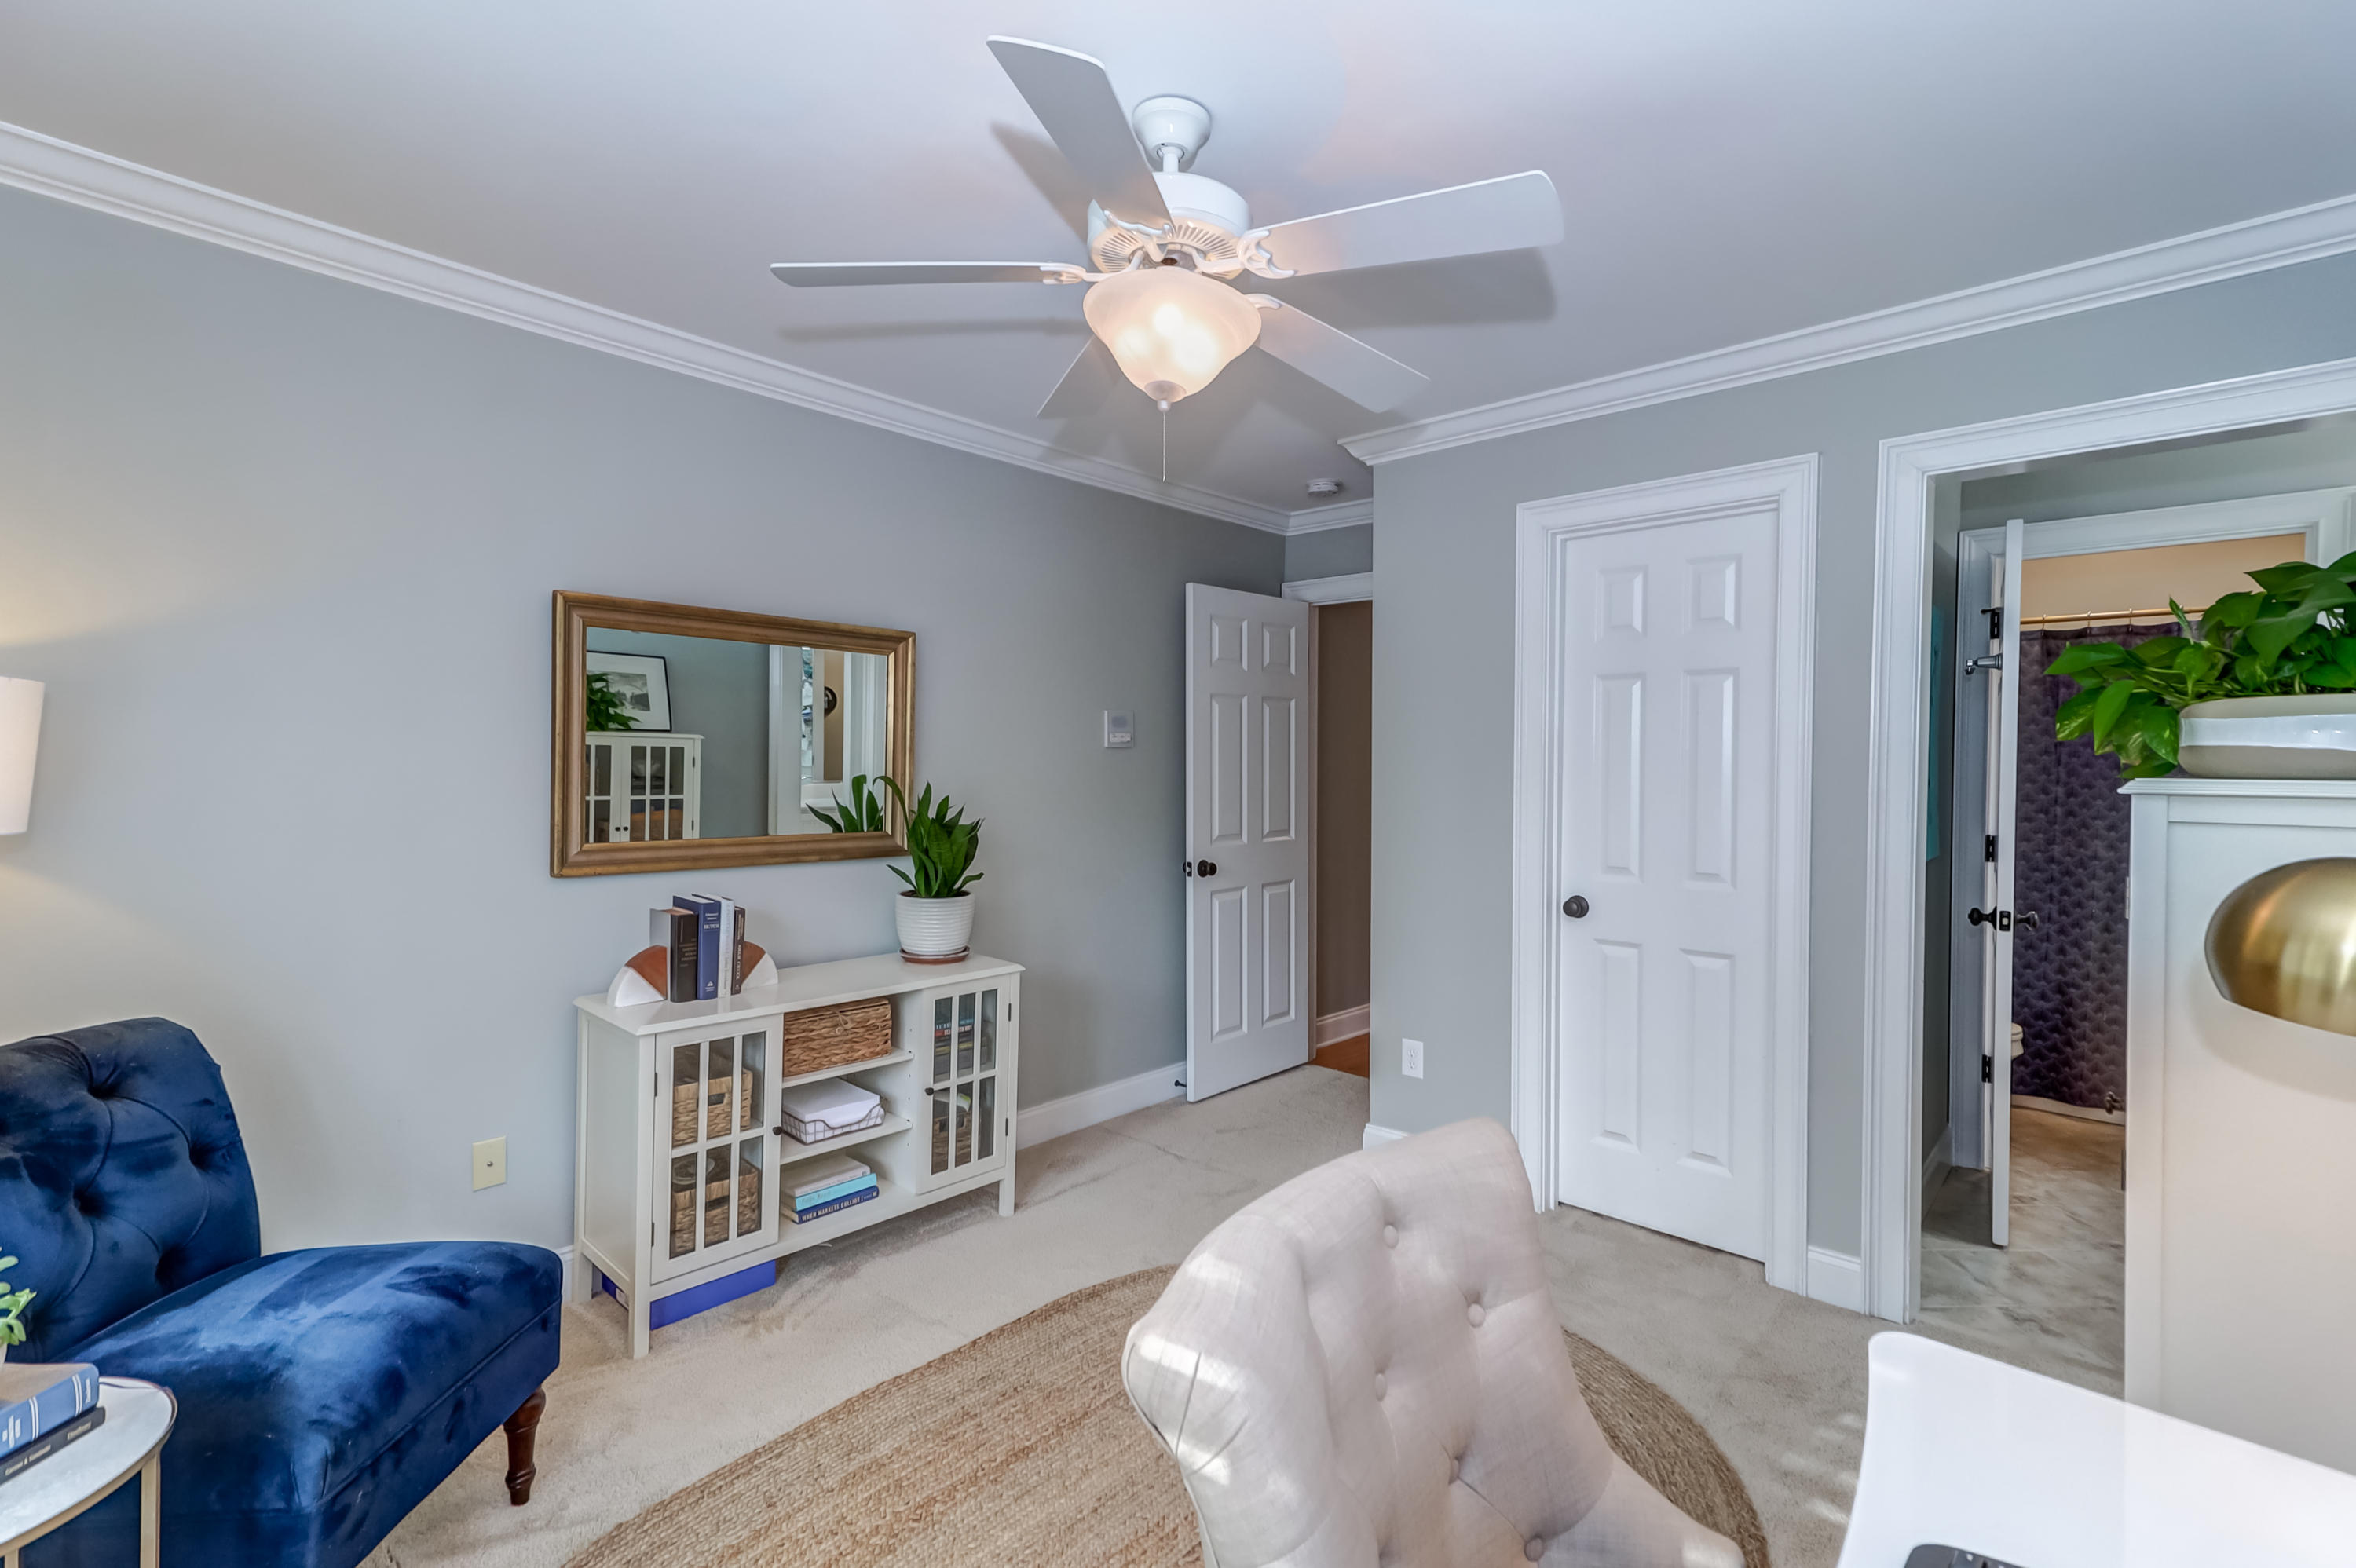 Woodward Pointe Homes For Sale - 657 White Chapel, Charleston, SC - 0